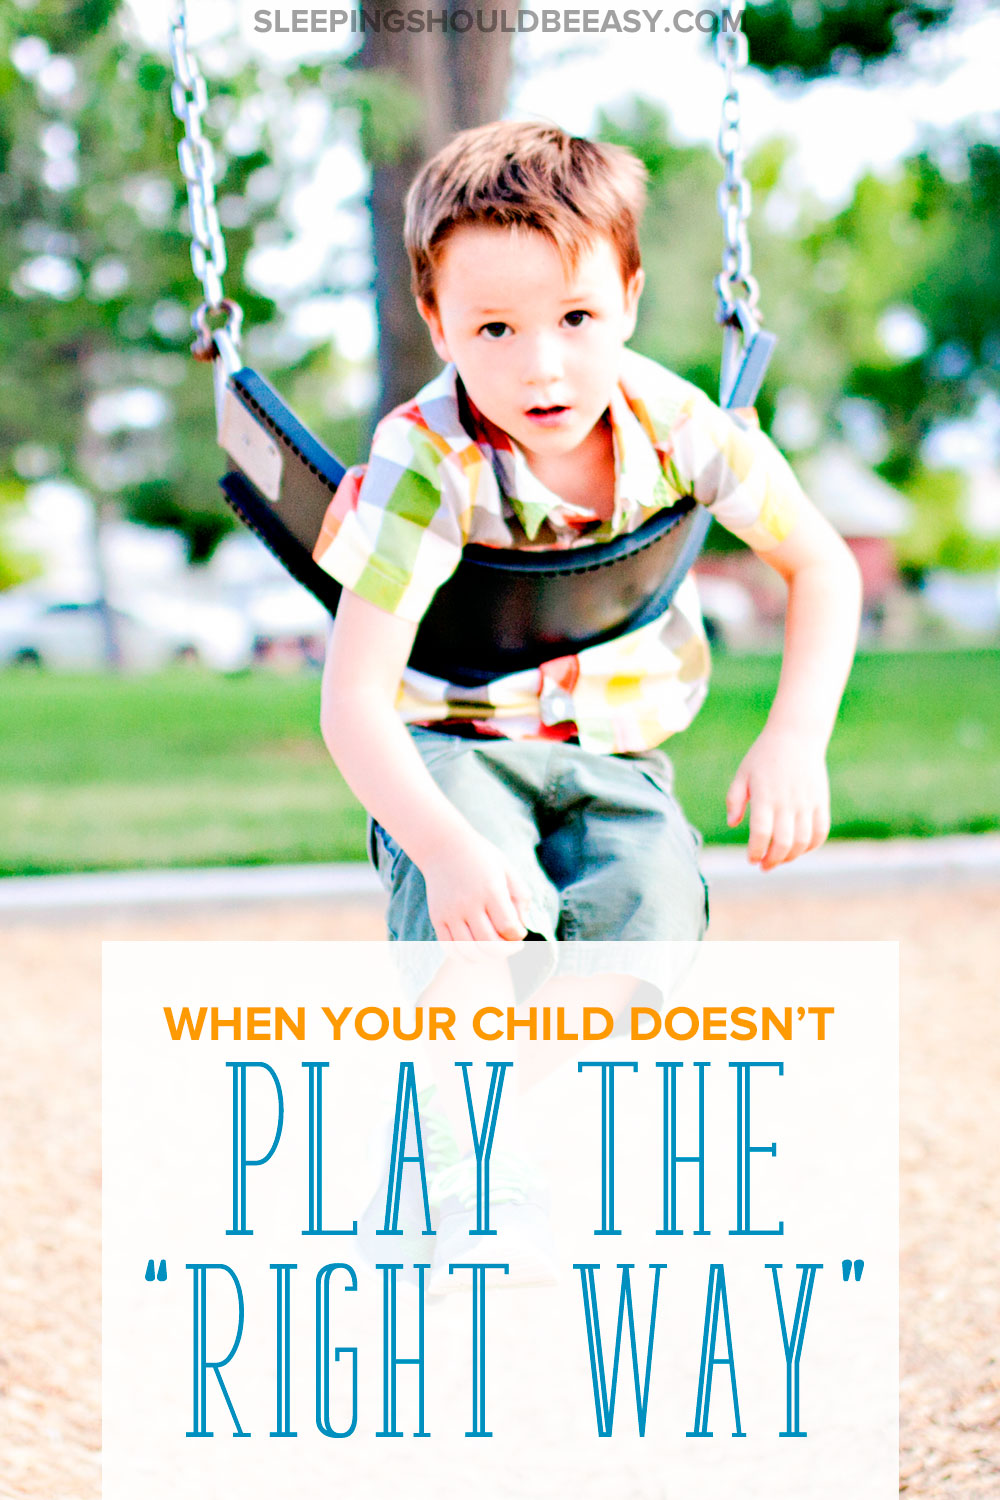 You see other kids playing with toys and at the park the way they're supposed to. Here's why it's not so bad when your child doesn't play the right way.